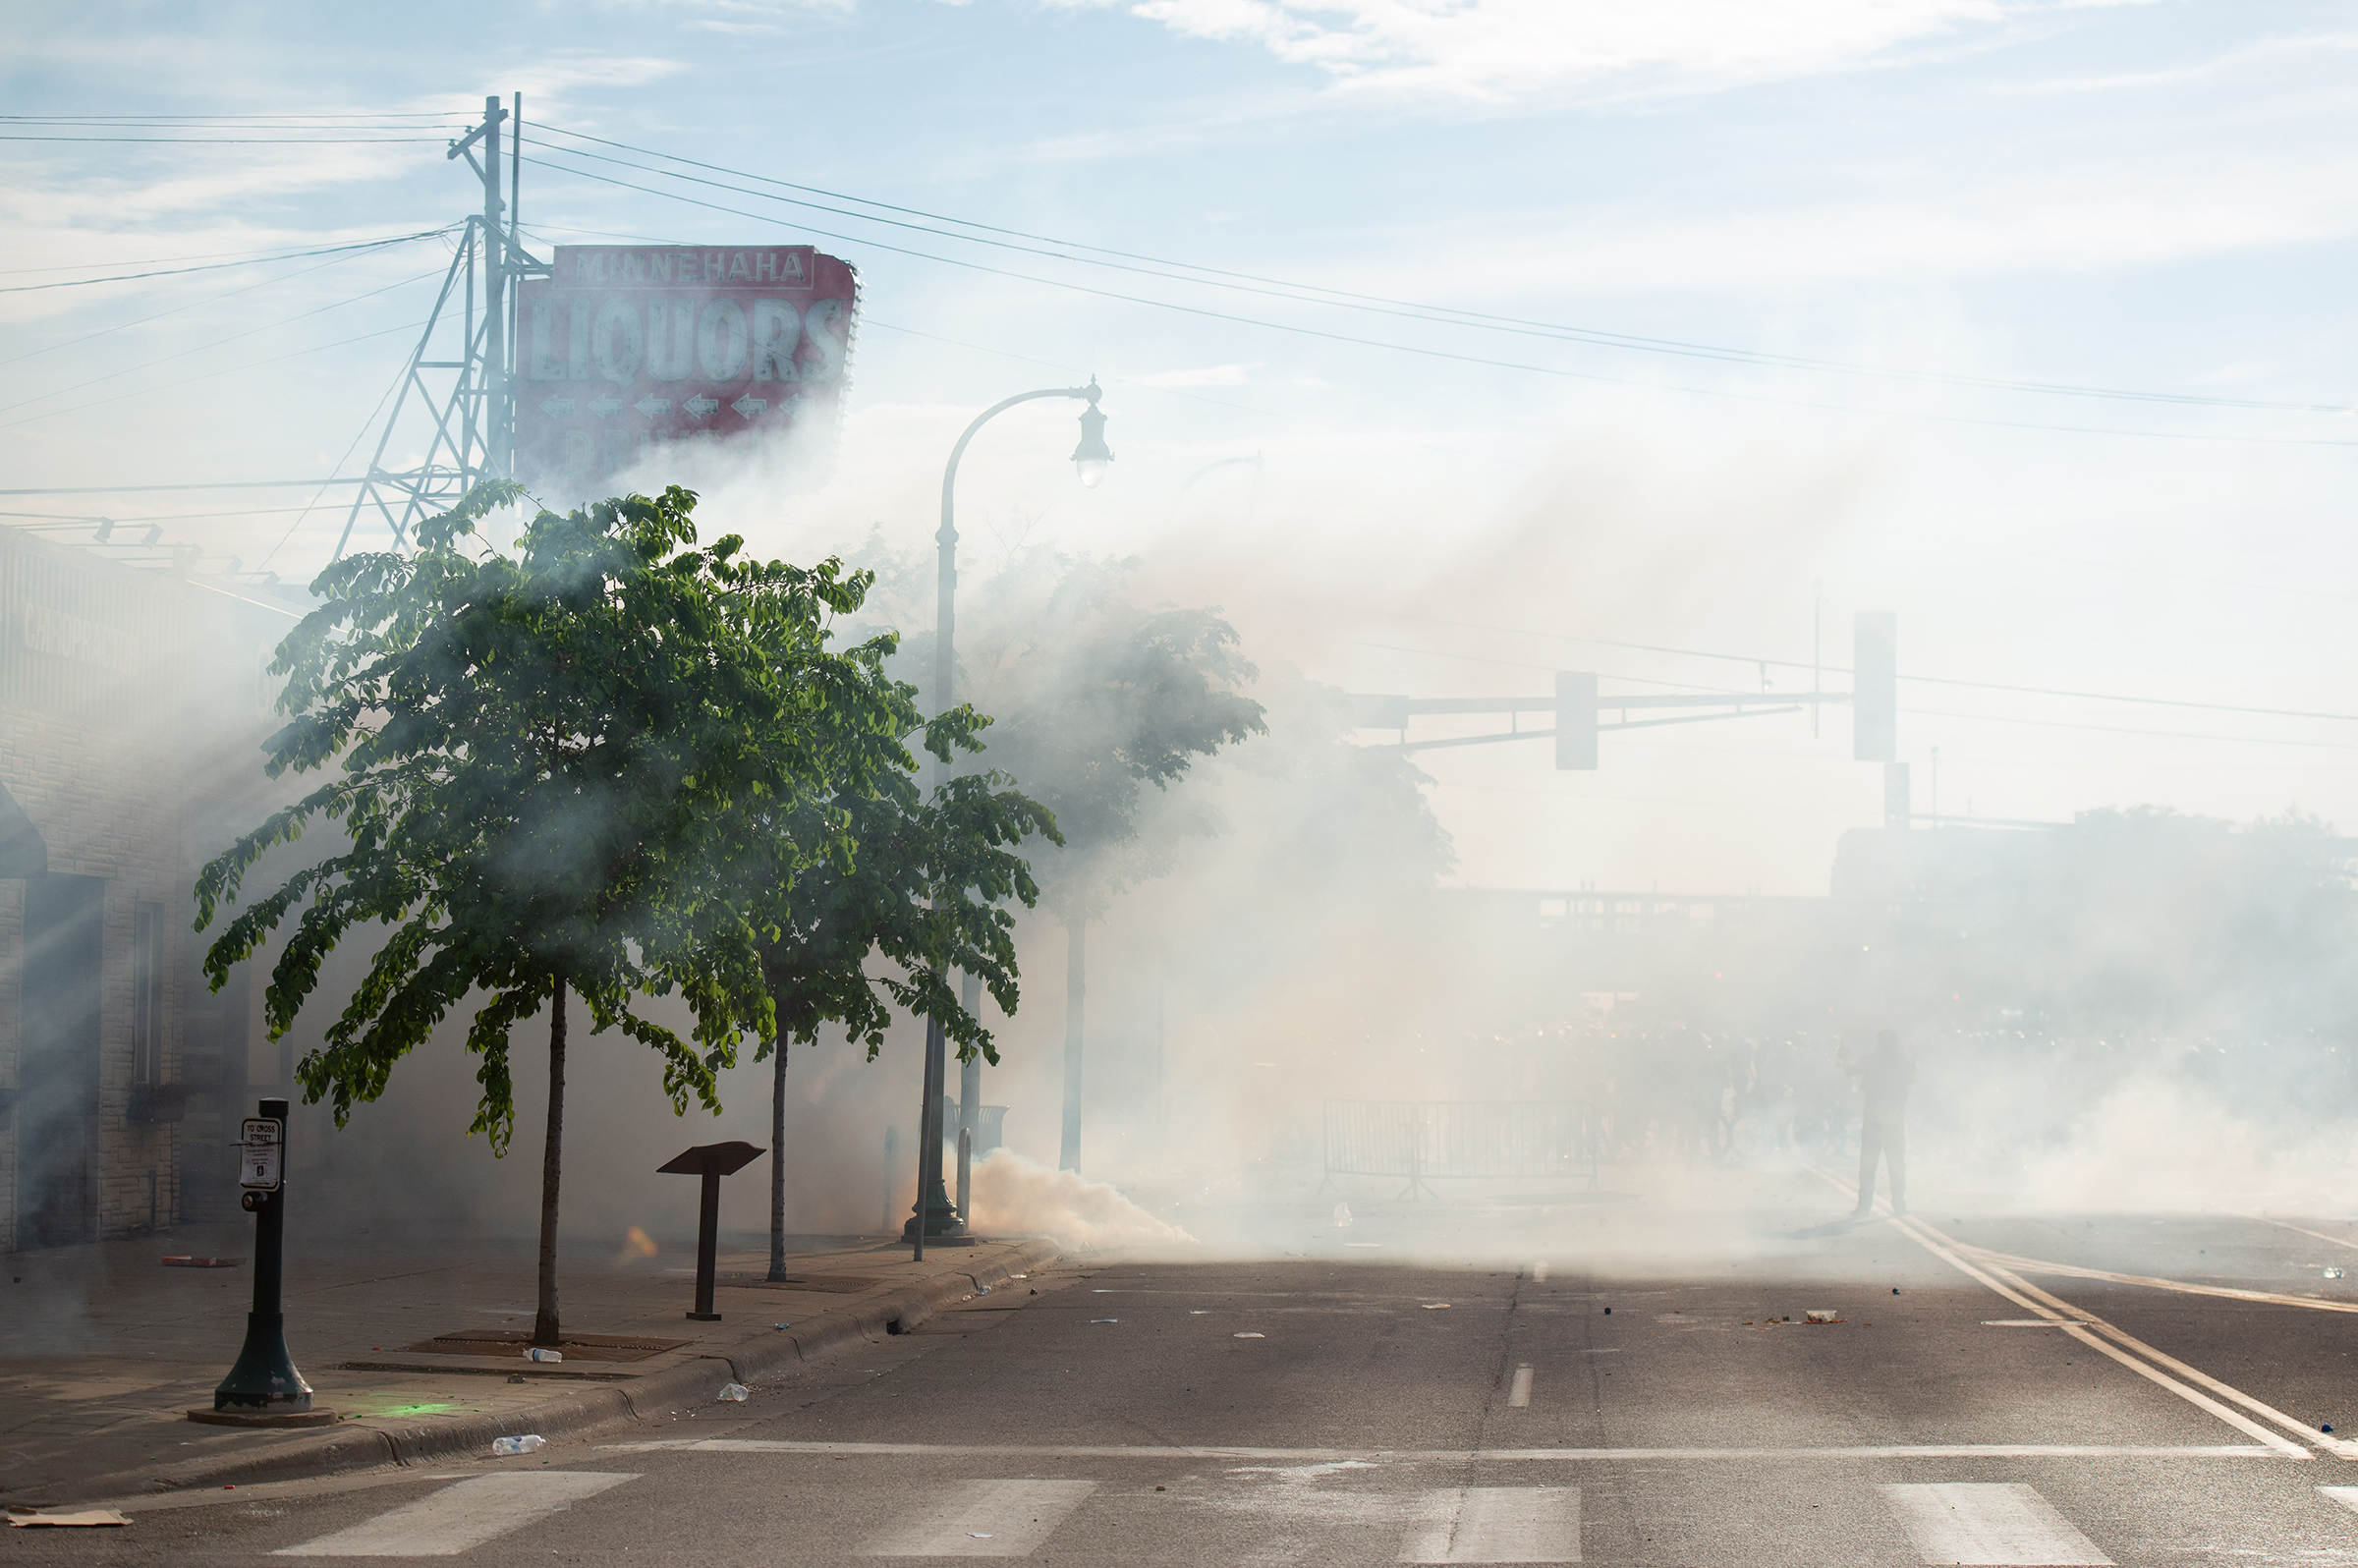 Clouds of tear gas linger in the air over Lake Street during the second day of protests in Minneapolis on May 27.